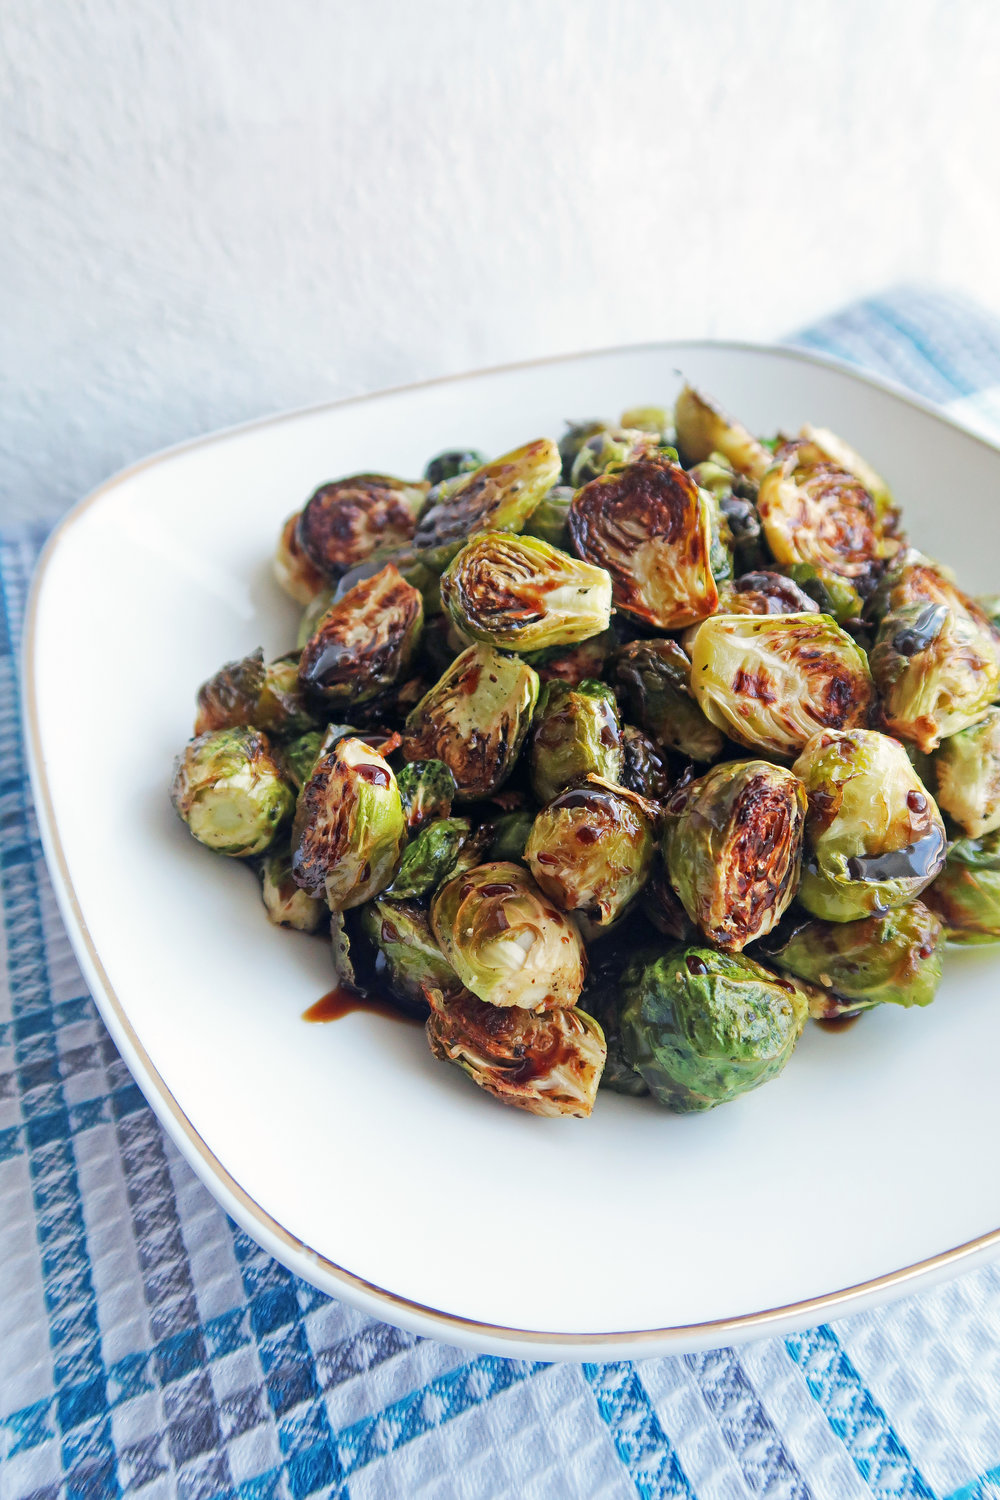 Simple and easy, gluten-free and vegan Roasted Brussels Sprouts with Balsamic-Maple Glaze on a white plate.